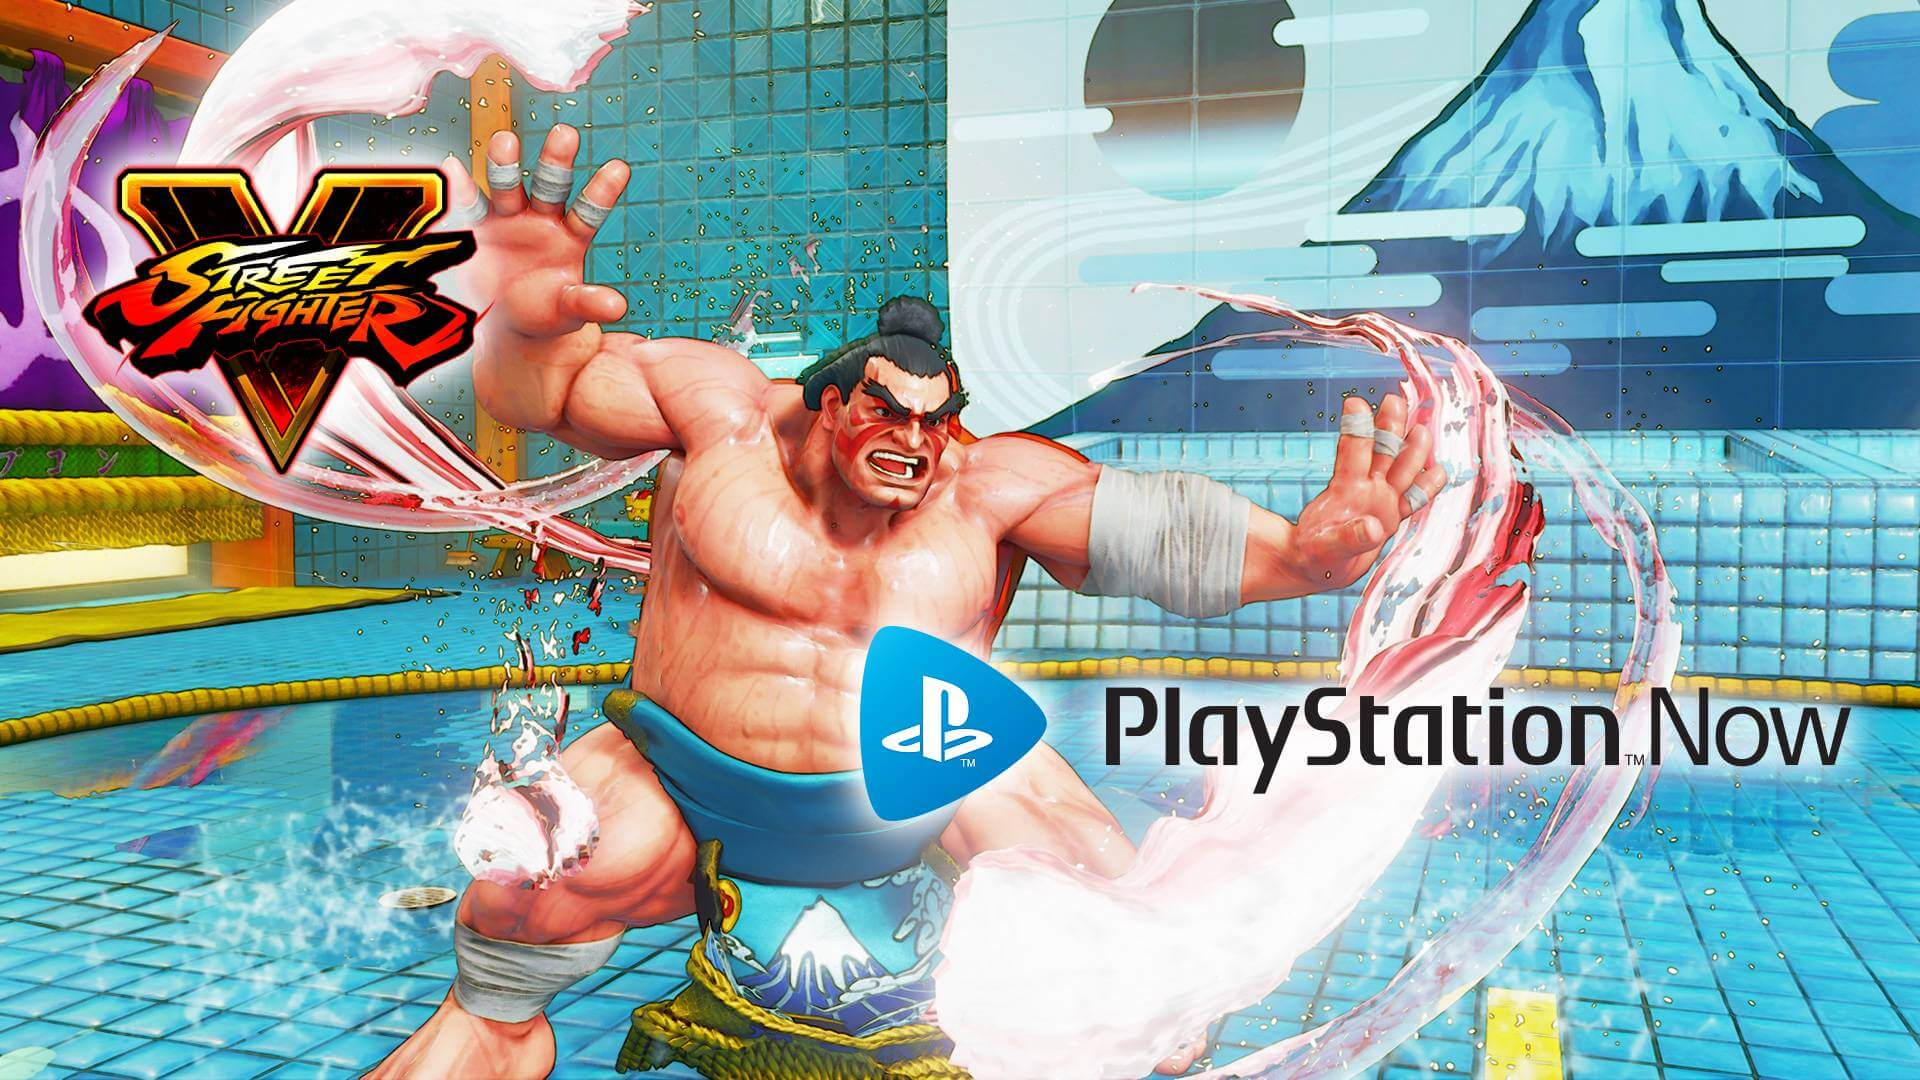 Street Fighter V is on PlayStation Now